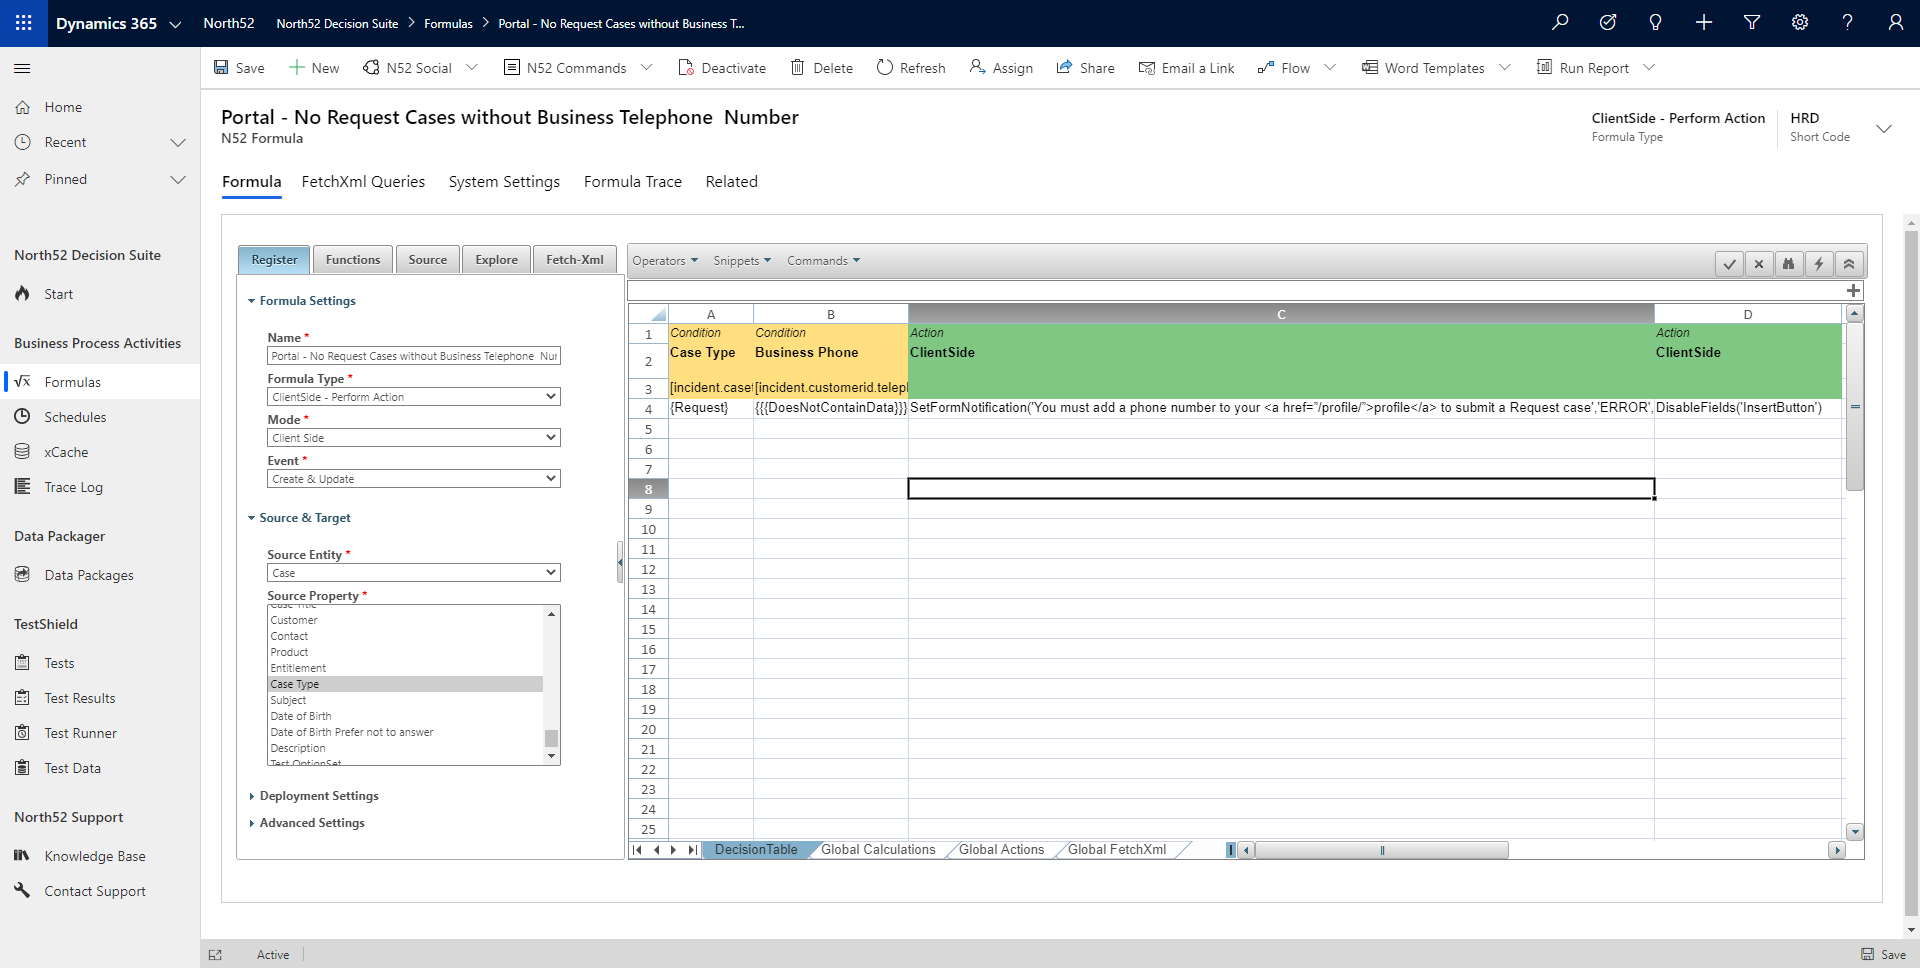 Eligibility Decision Table - North52 Business Rules Engine for Dynamics 365